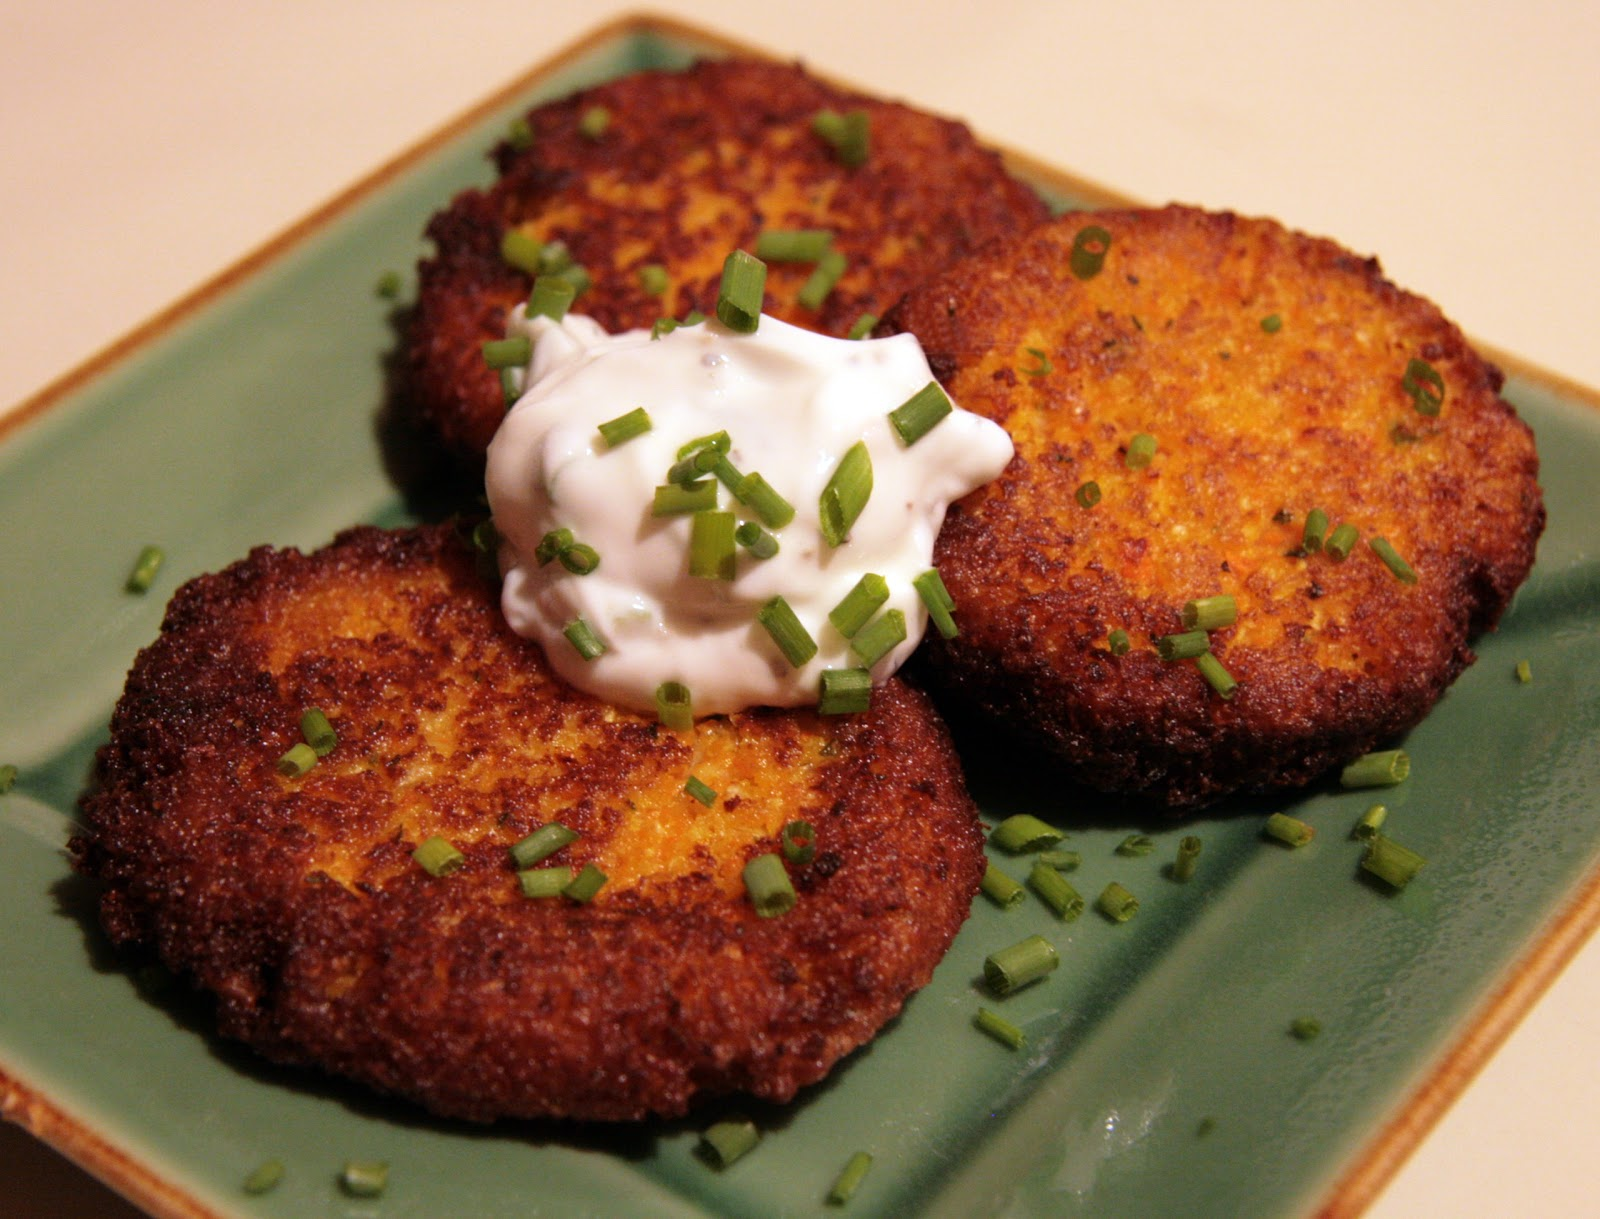 Local Food Rocks: Carrot and Turnip Fritters